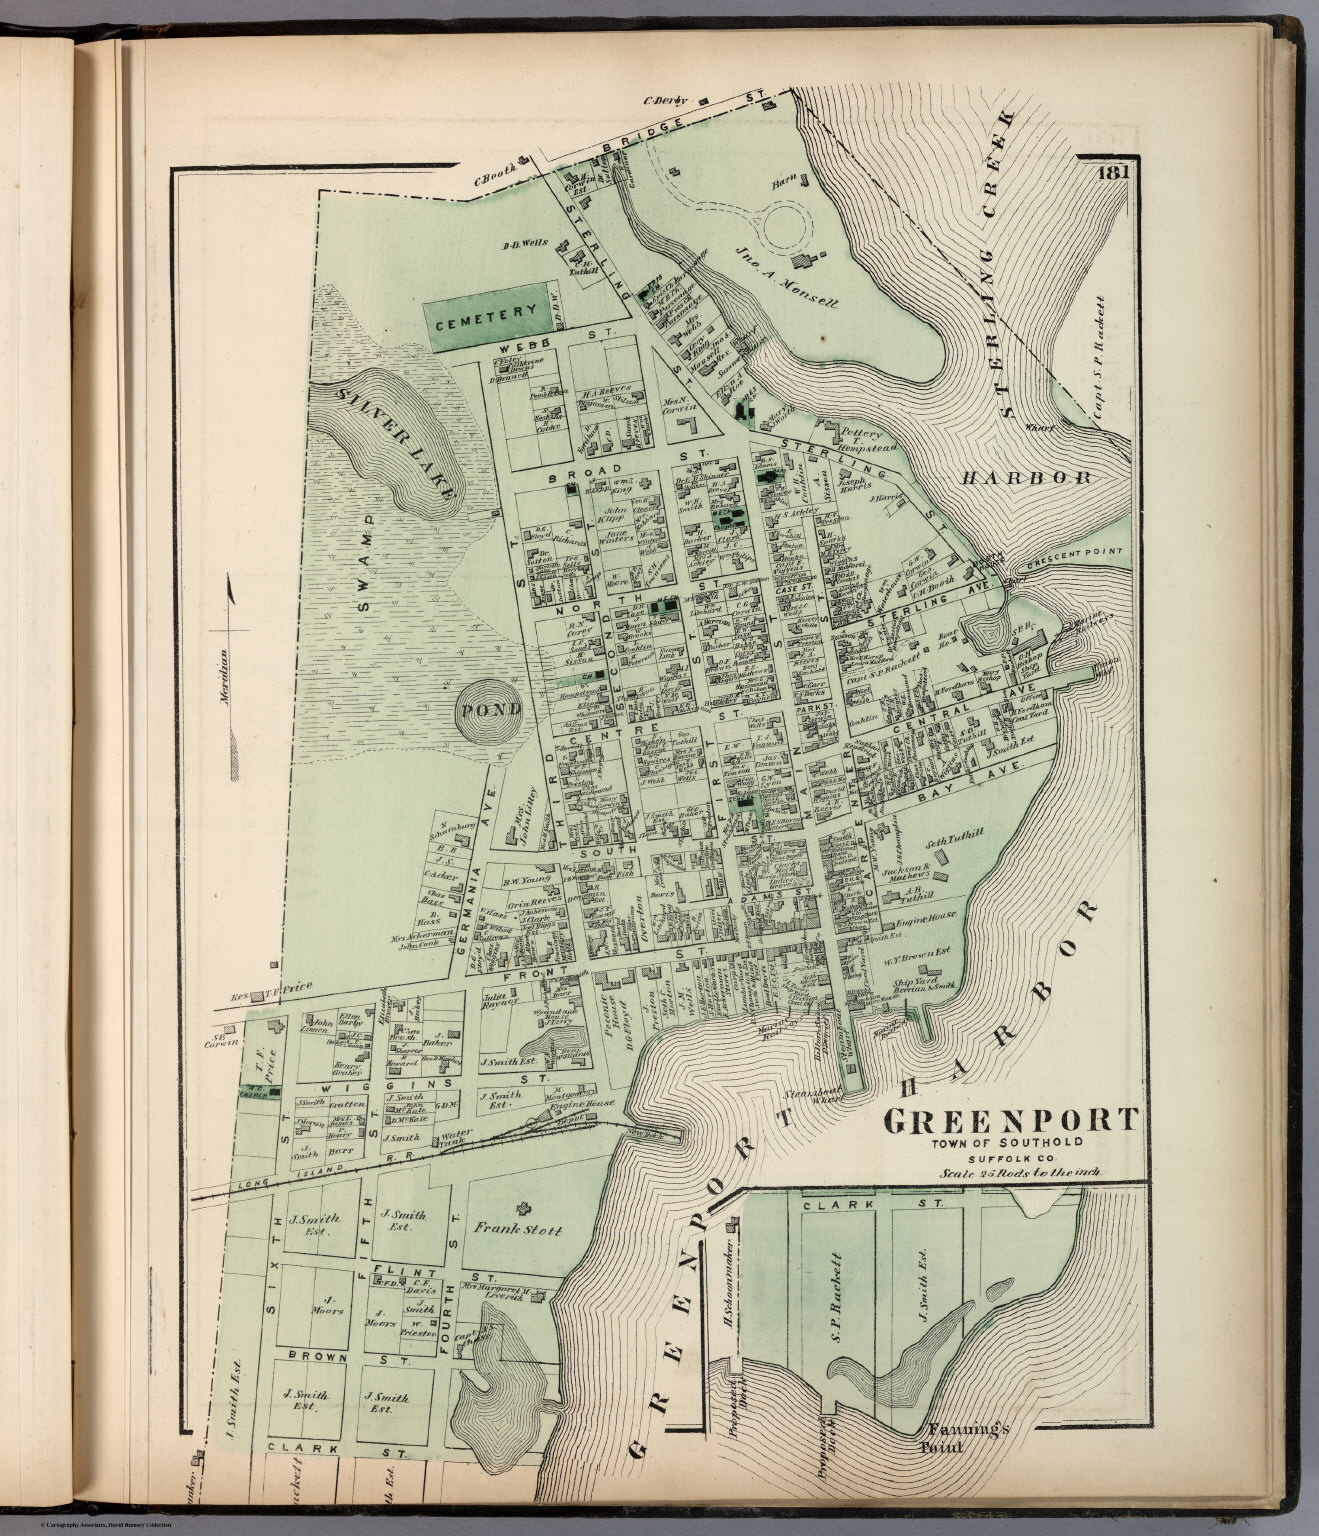 Greenport, Town of Southold, Suffolk Co. - David Rumsey Historicalgreenport town